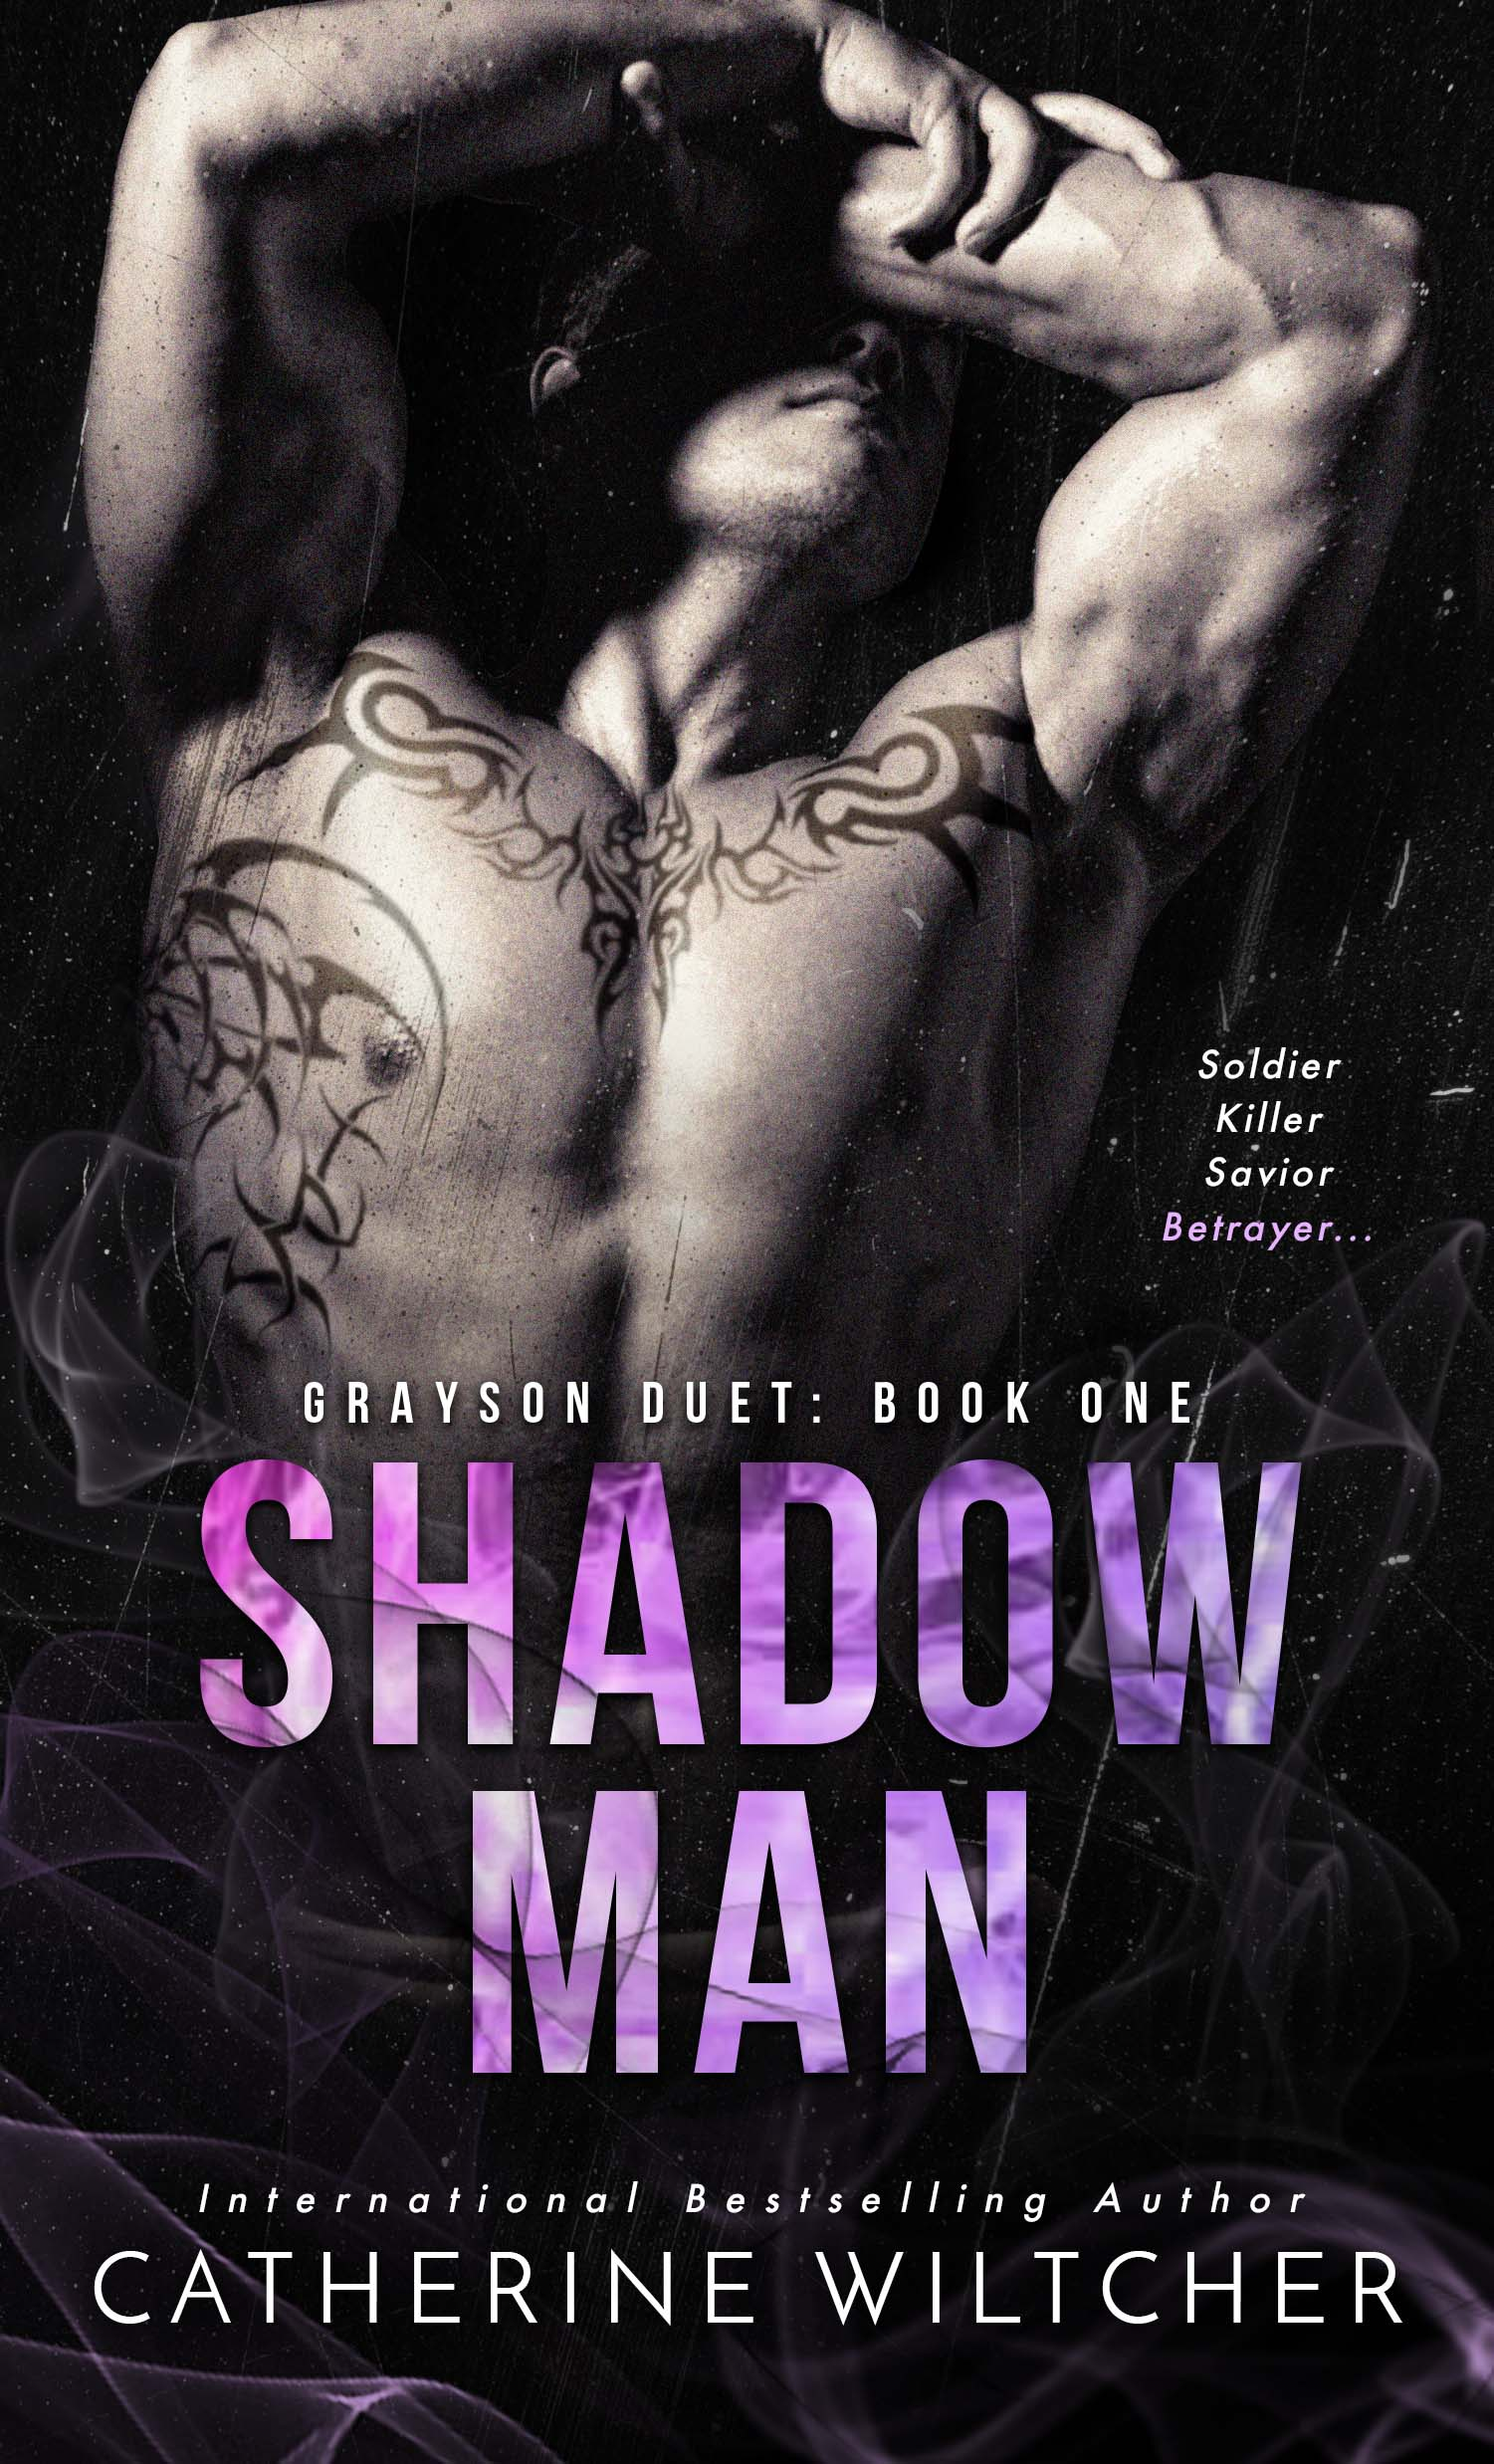 Shadow Man - Grayson Duet 1 - Catherine Wiltcher